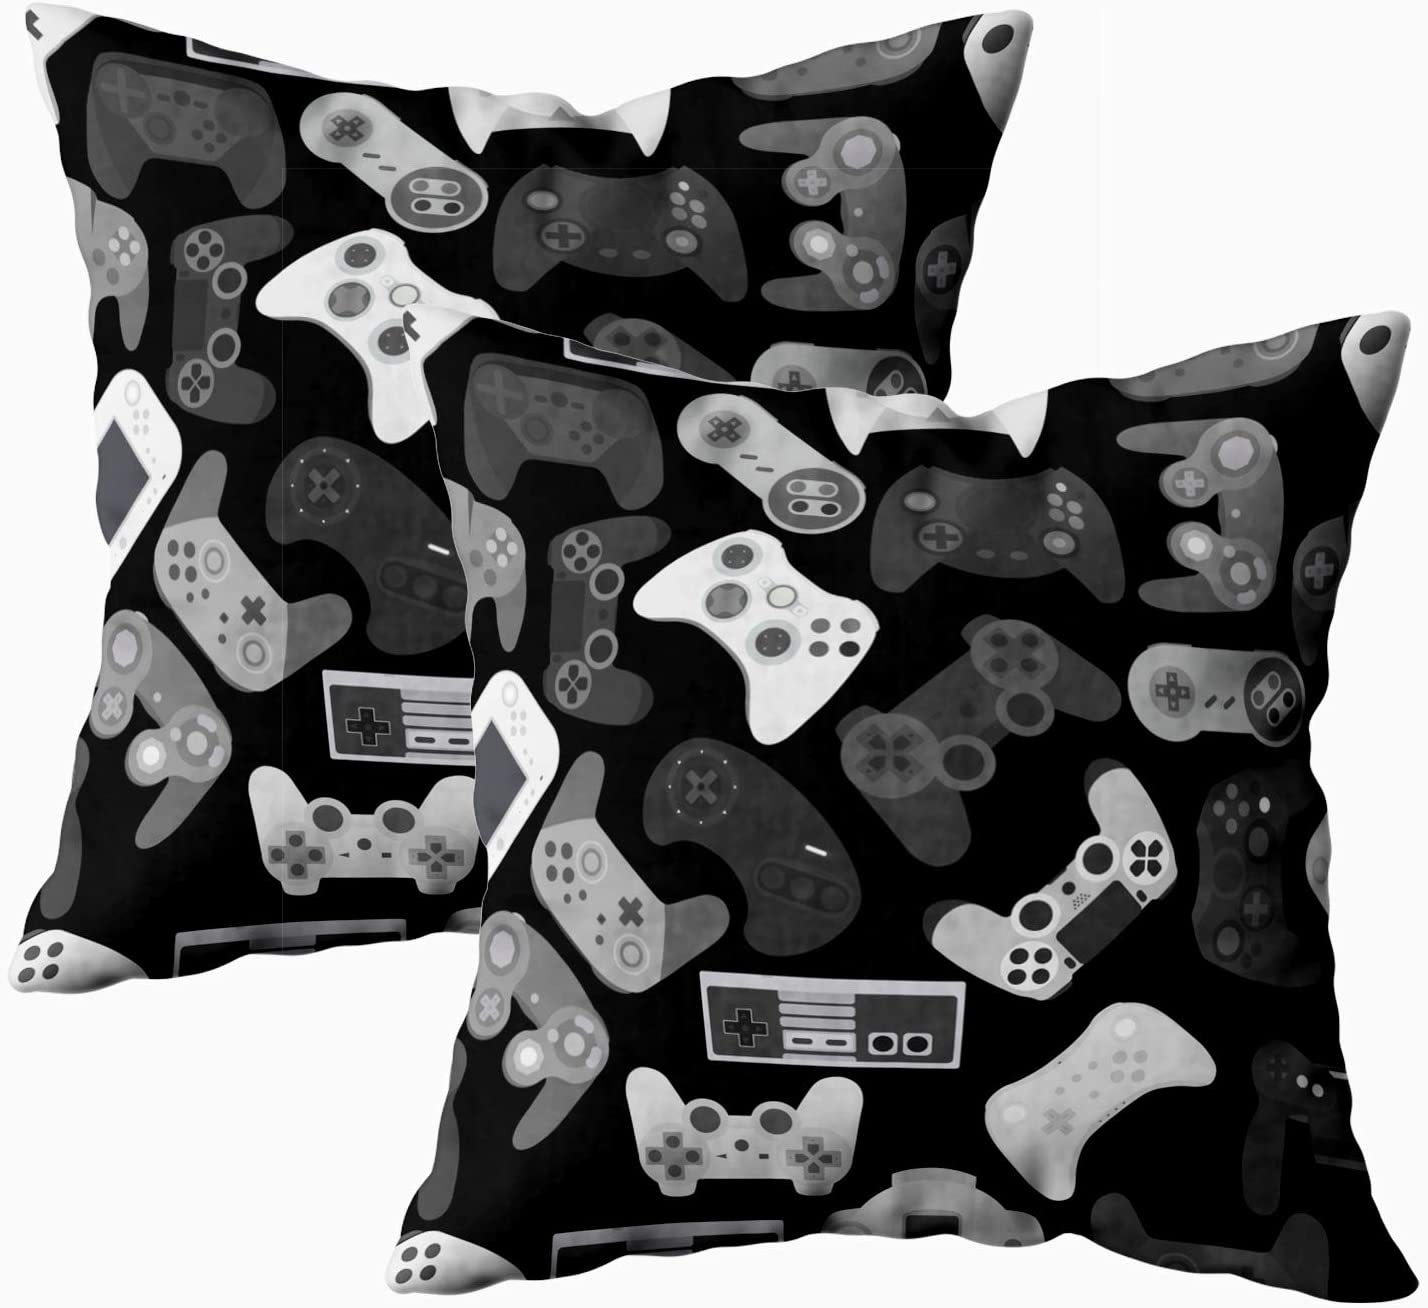 TOMWISH Decor Pillow Covers,TOMKEY 2 Packs Hidden Zippered 18X18Inch Video Game Controller Background Gadgets Pattern Black White Decor Throw Cotton Pillow Case Cushion Cover for Home Decor